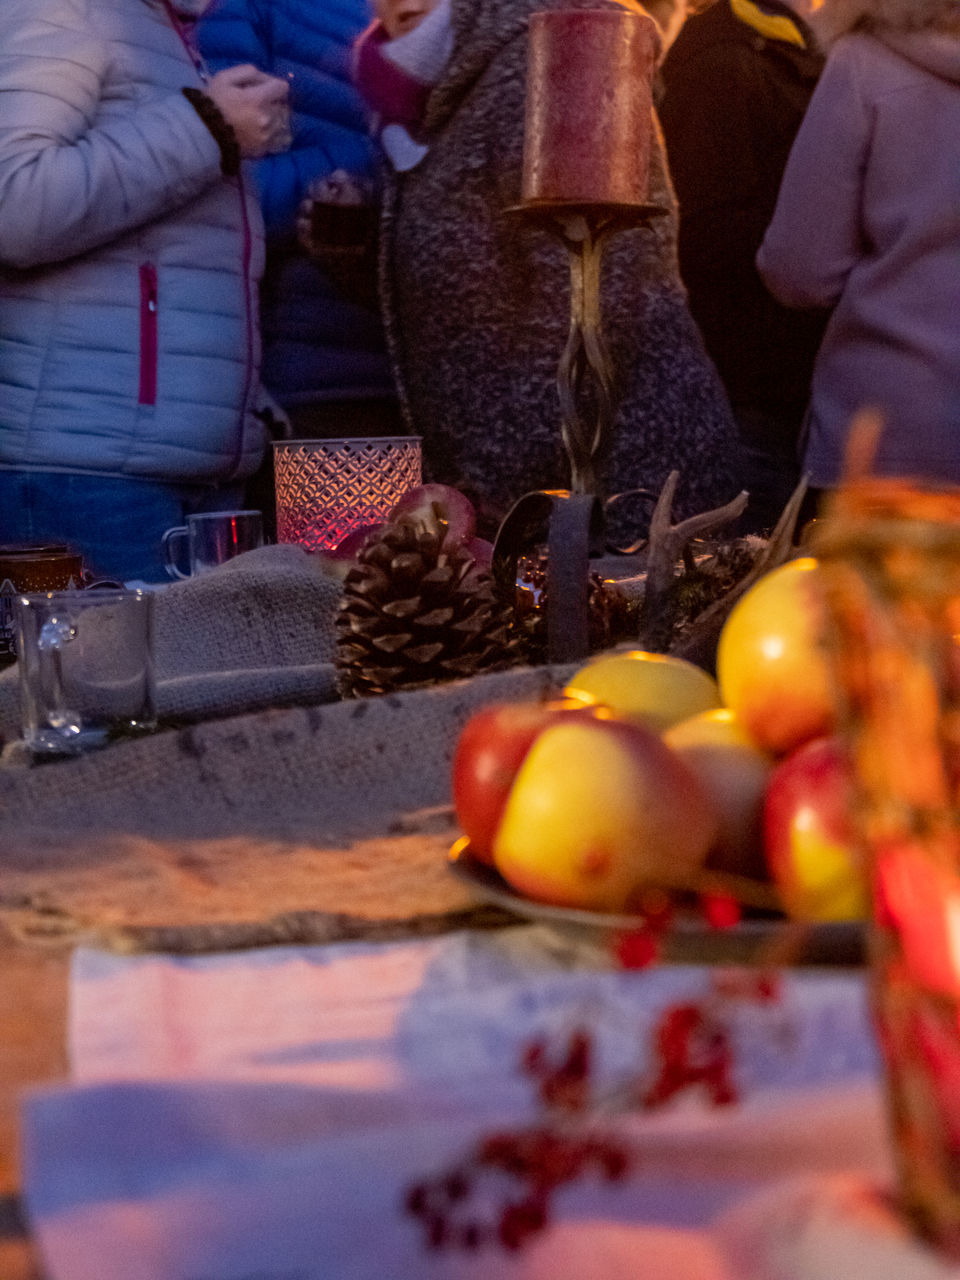 food, food and drink, healthy eating, indoors, real people, selective focus, fruit, retail, wellbeing, market, for sale, freshness, men, business, people, incidental people, container, close-up, small business, market stall, retail display